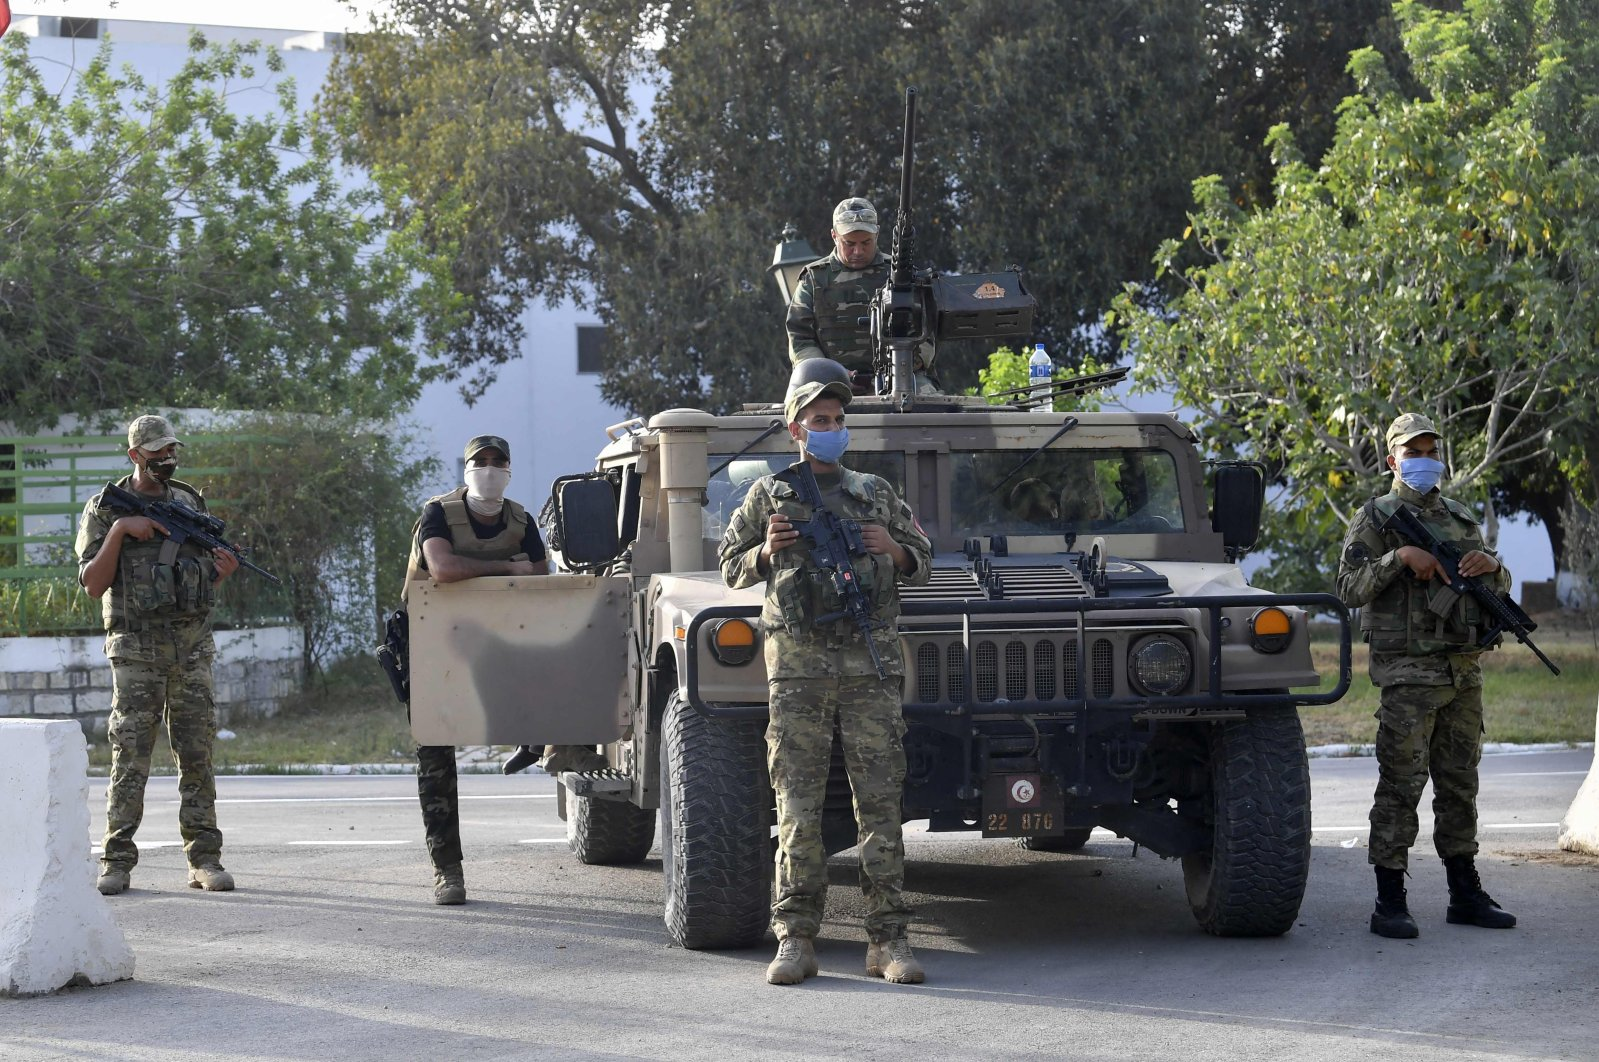 Tunisian soldiers cordon off the parliament building in the capital Tunis on July 26, 2021, following a move by the President to suspend the country's parliament and dismiss the Prime Minister. (AFP Photo)